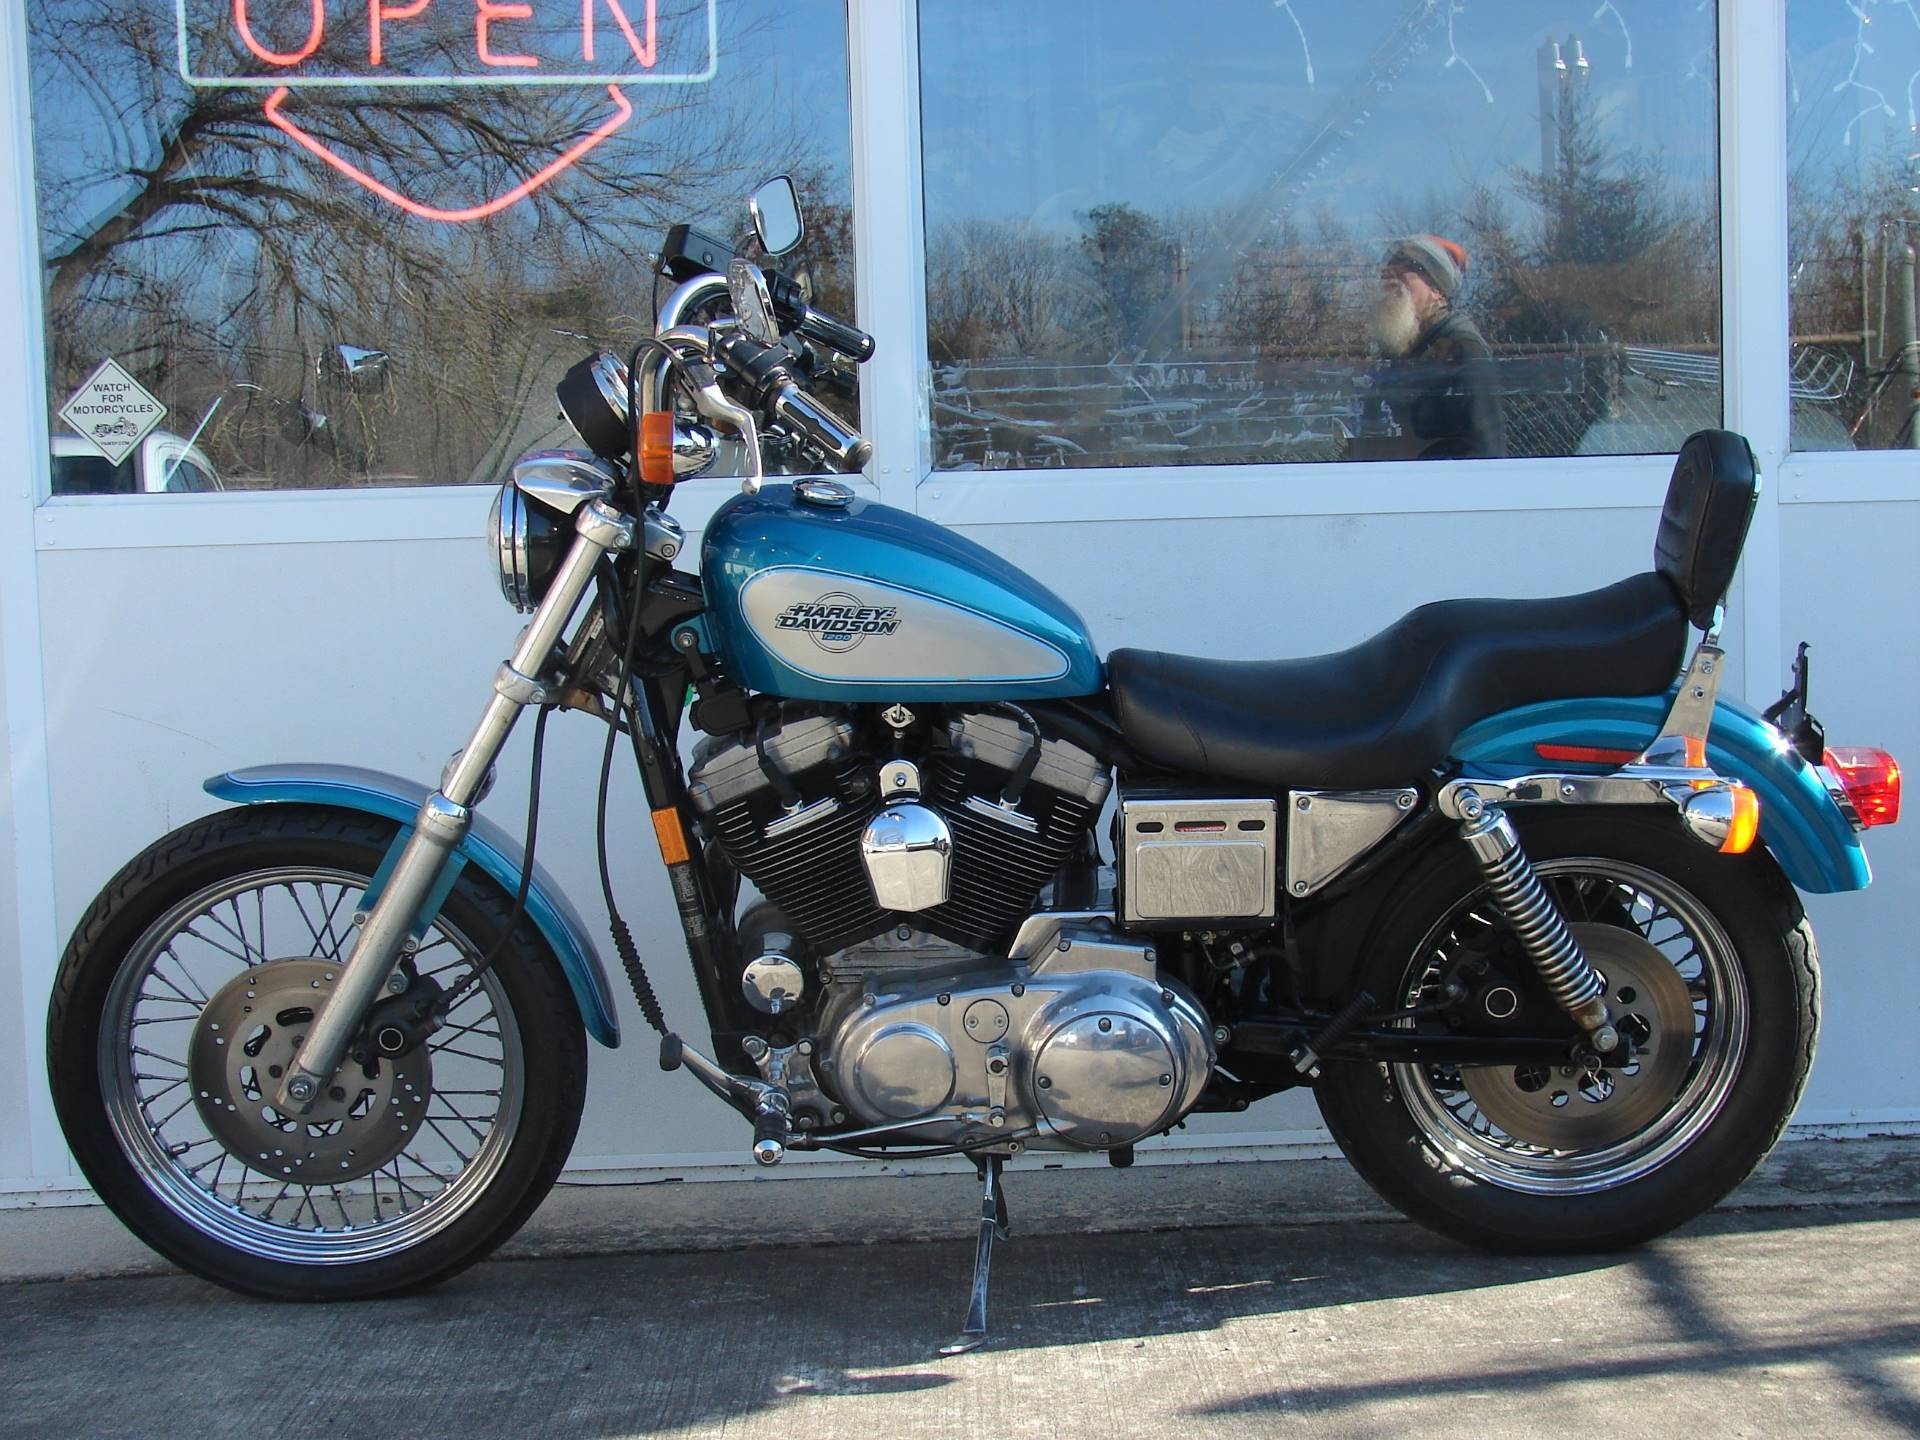 1995 Harley-Davidson 1200 Sportster  (Teal Blue and Silver) in Williamstown, New Jersey - Photo 14